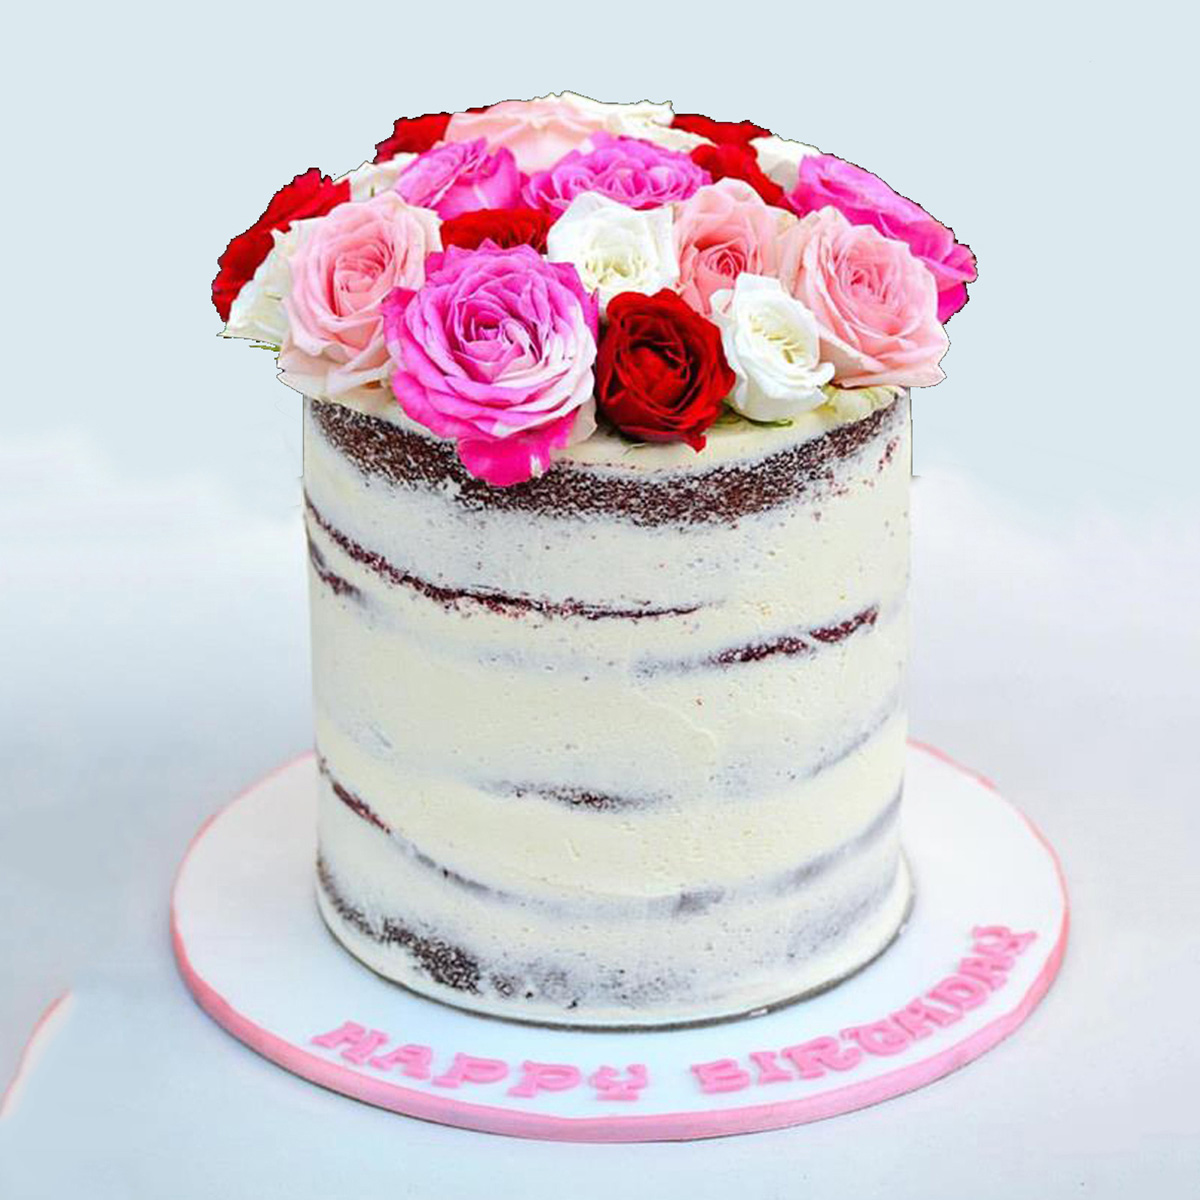 Buy Naked Flowers Cake - 1 kg and 3 kg Cake Size with